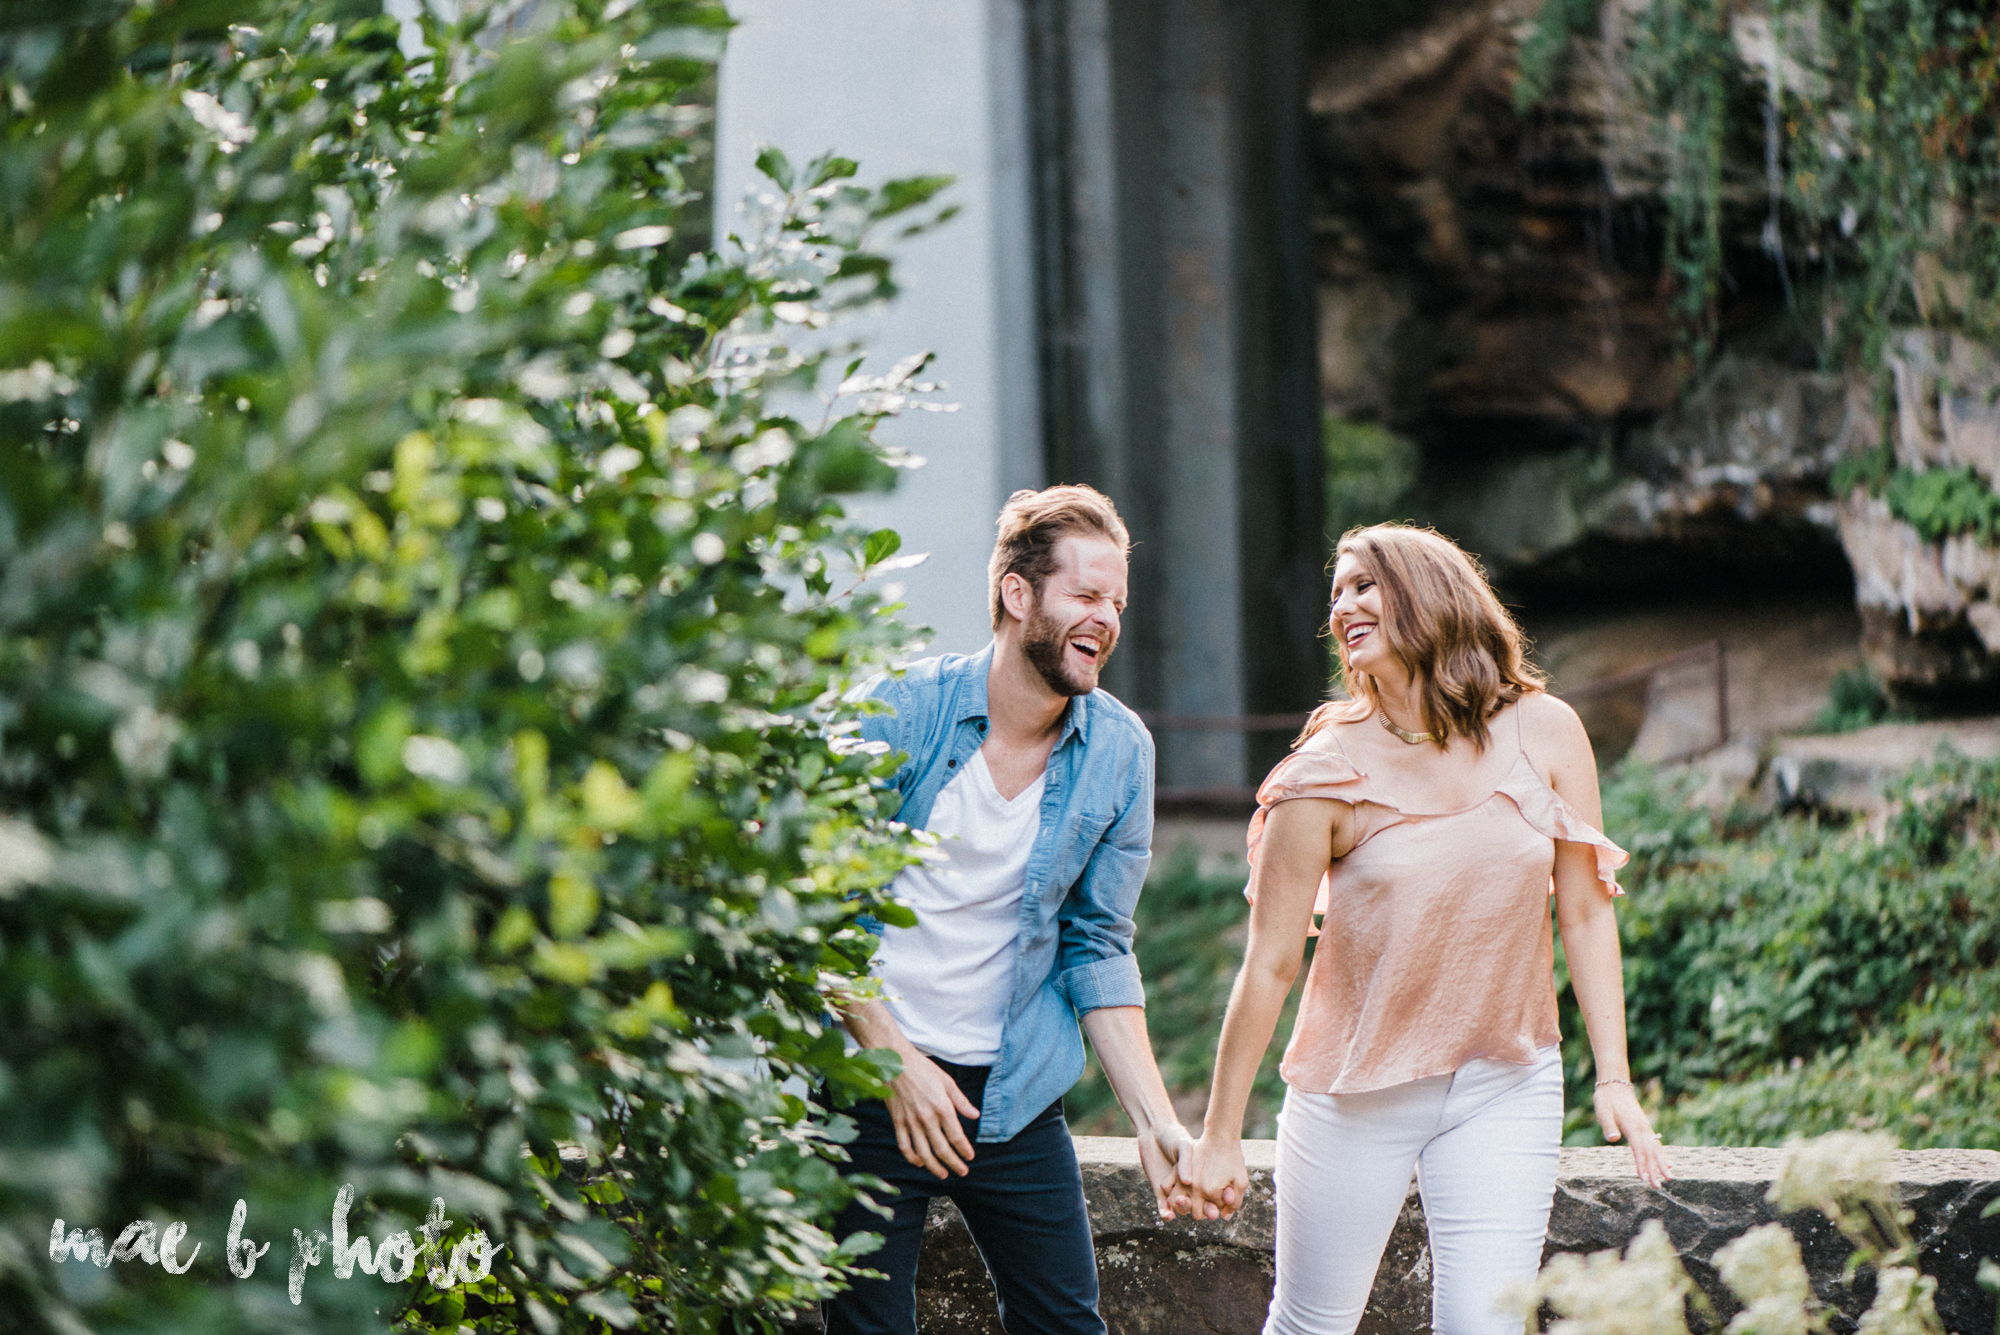 lauren and steve's summer engagement session at the rose gardens and lanterman's mill in mill creek park in youngstown ohio photographed by youngstown wedding photographer mae b photo-33.jpg